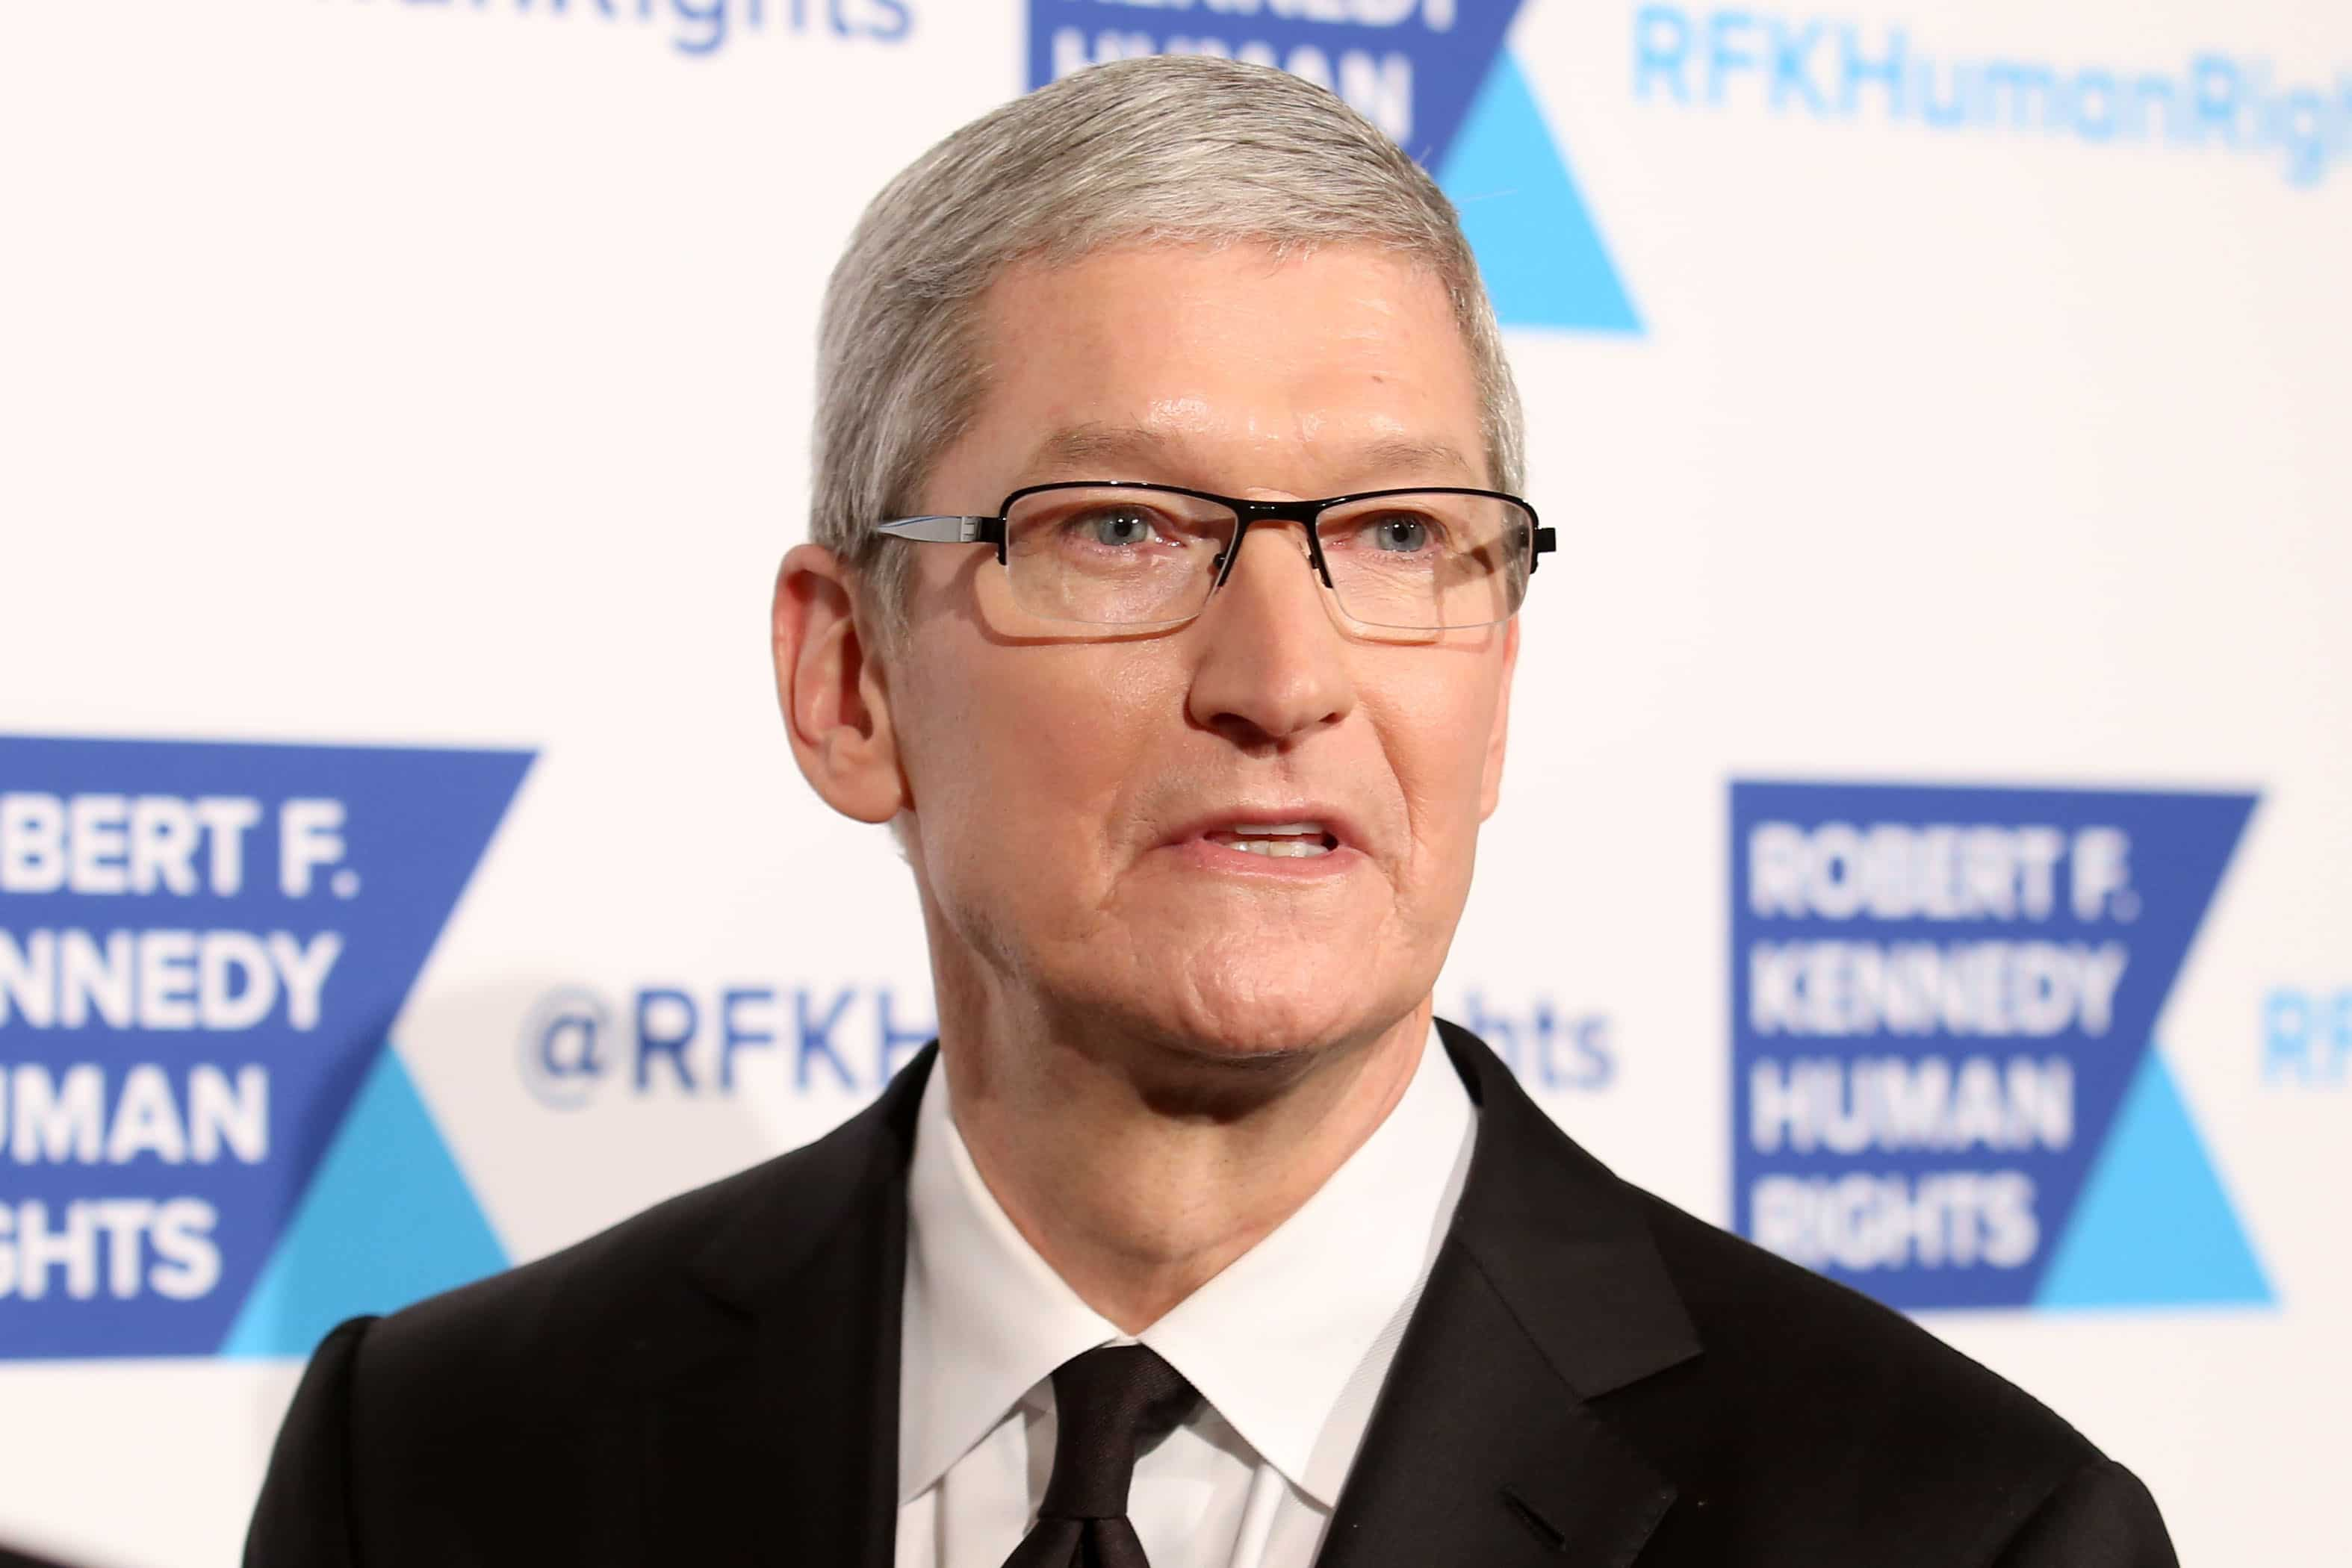 tim cook leadership Apple ceo tim cook robert galbraith/reuters on august 24th, 2011, tim cook took the job as ceo of apple, leaving many wondering if he could fill the massive void left by his friend and mentor, steve jobs.